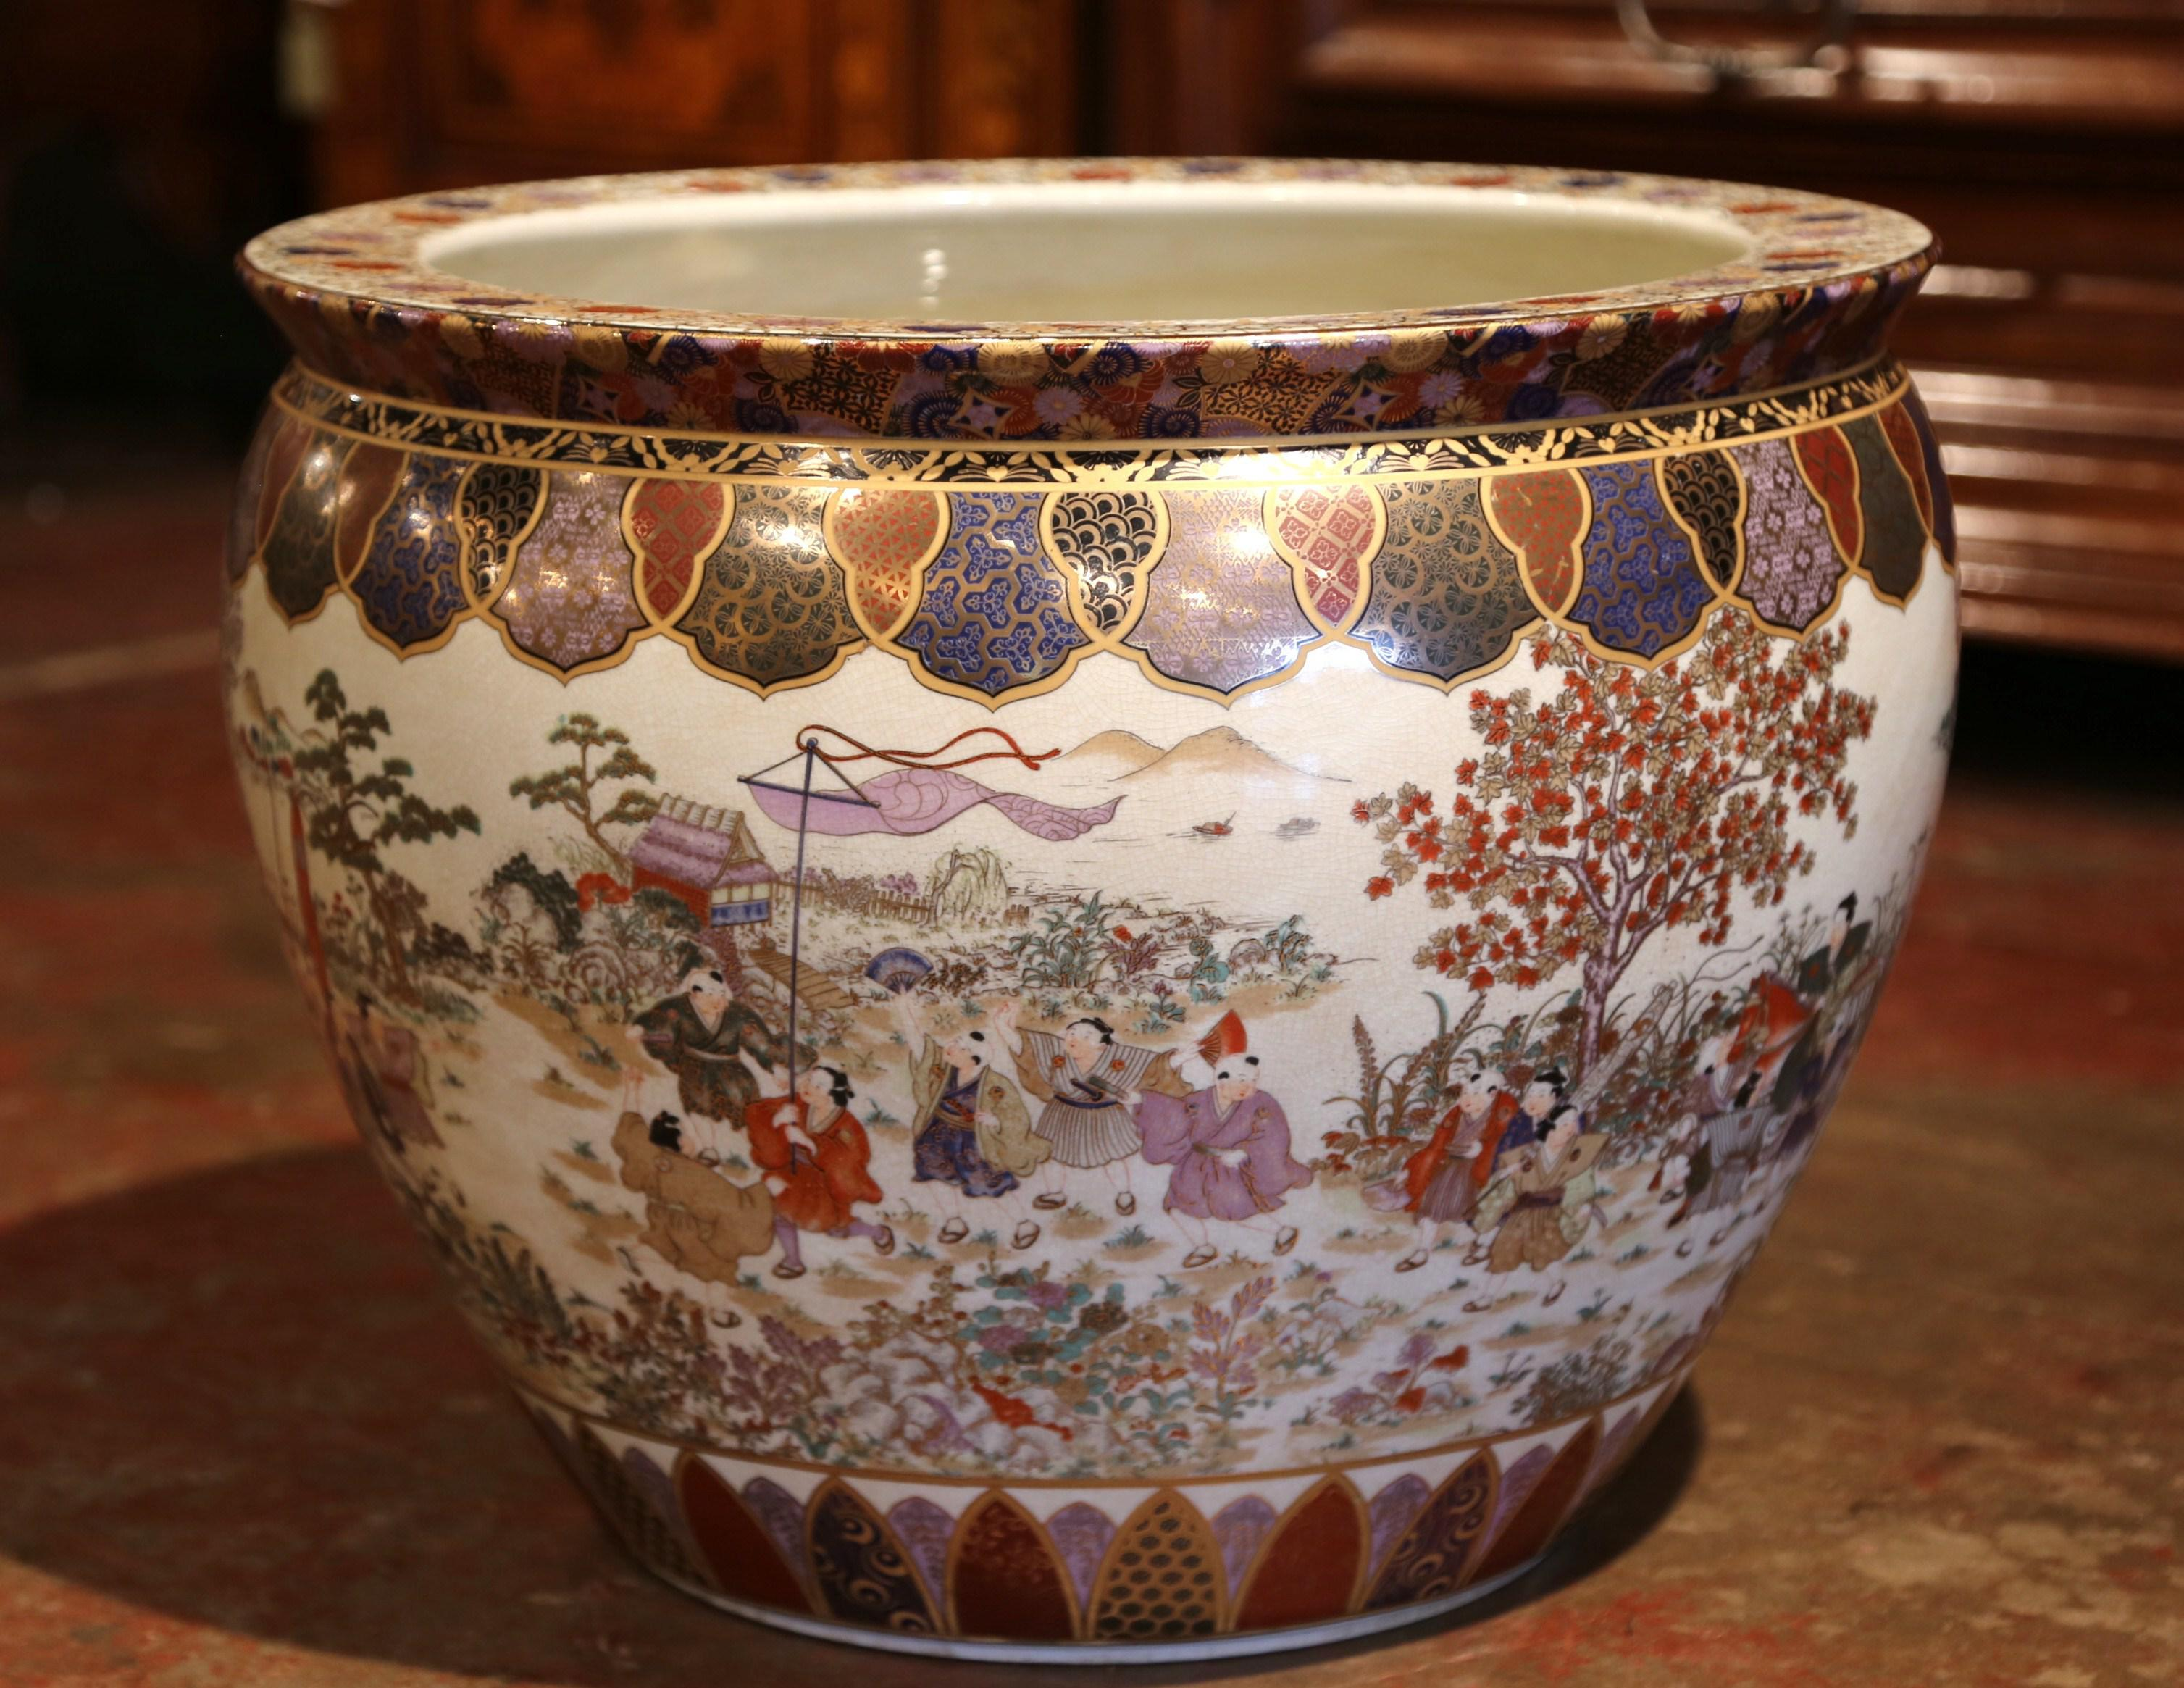 Large Porcelain Chinese Fishbowl Planter With Classic Oriental